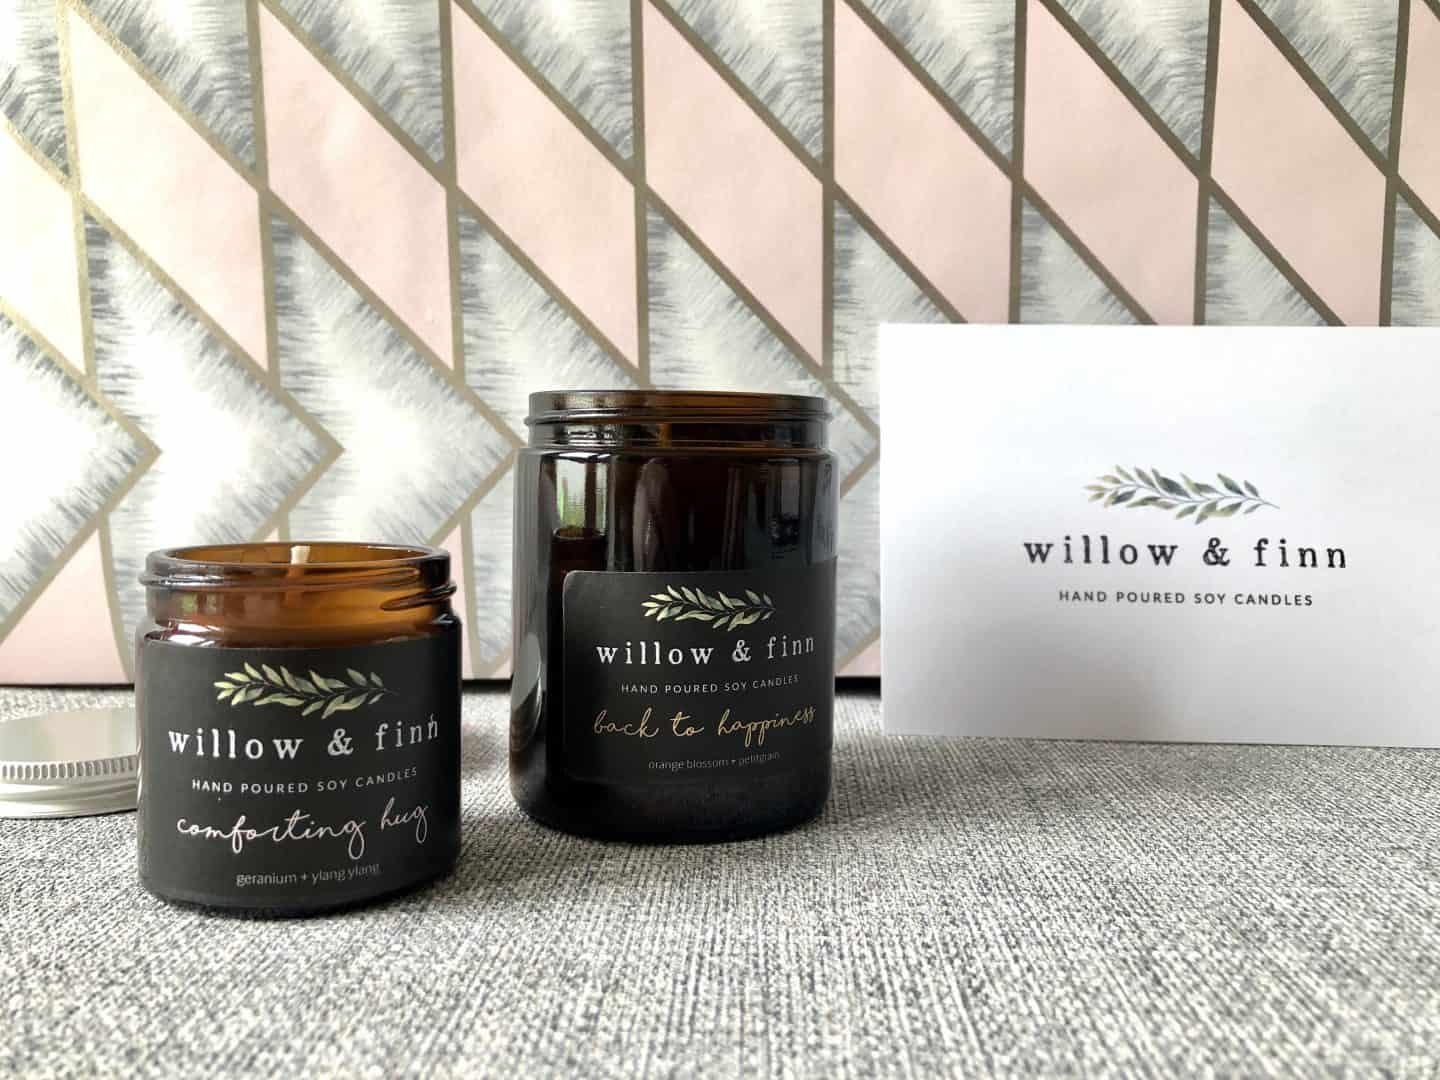 Willow & Finn soy candles